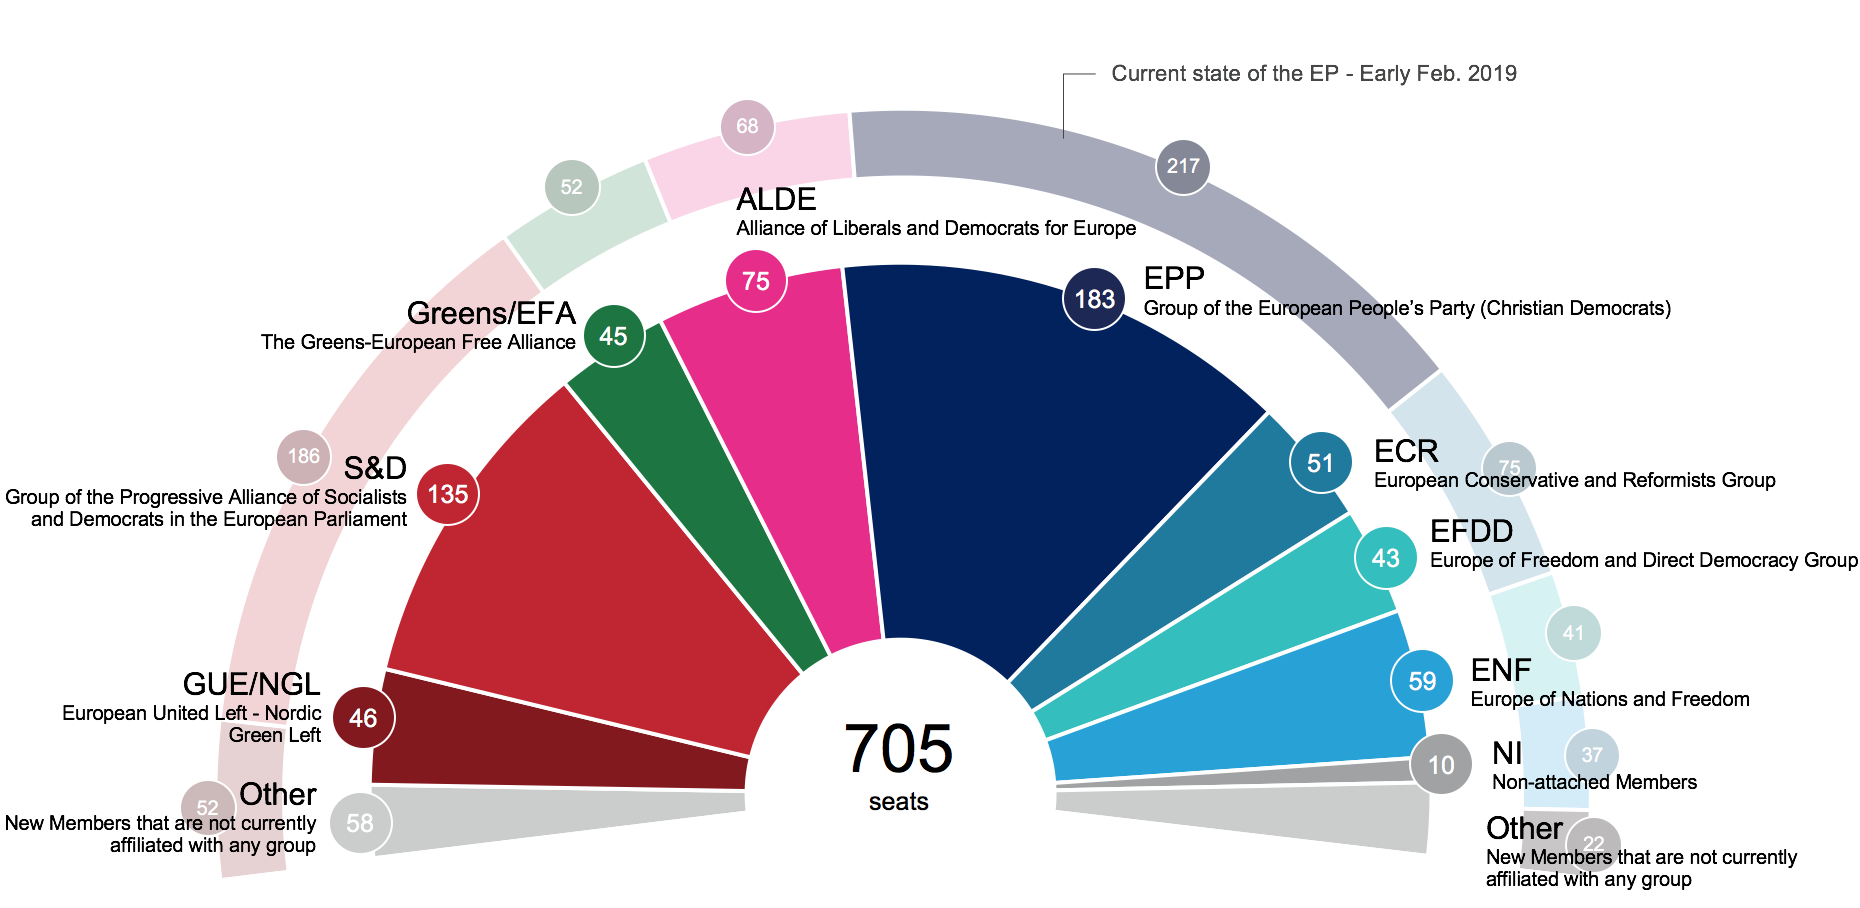 Projection of today's voting preferences across the EU27 onto the distribution of seats in the European Parliament.